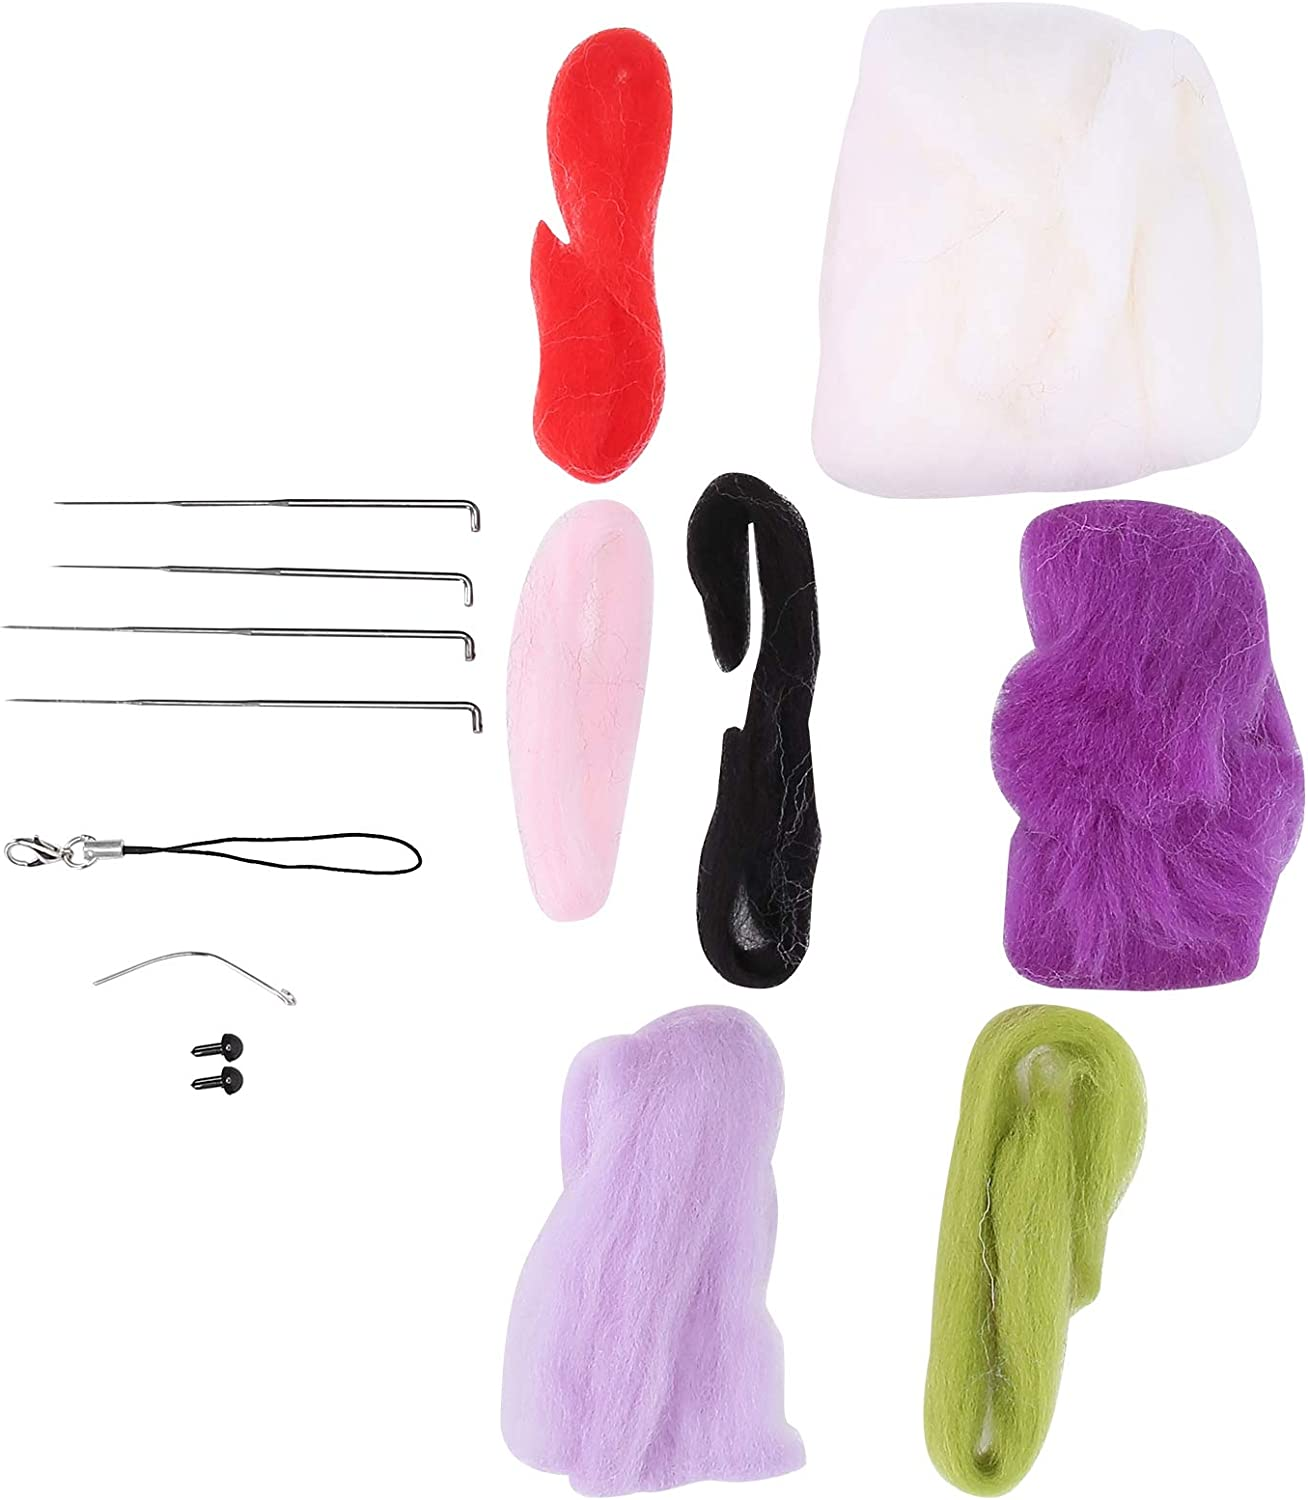 Needle Felting Outlet sale feature Bargain Kit Rabbit Doll Home Making DIY Decoration Craft